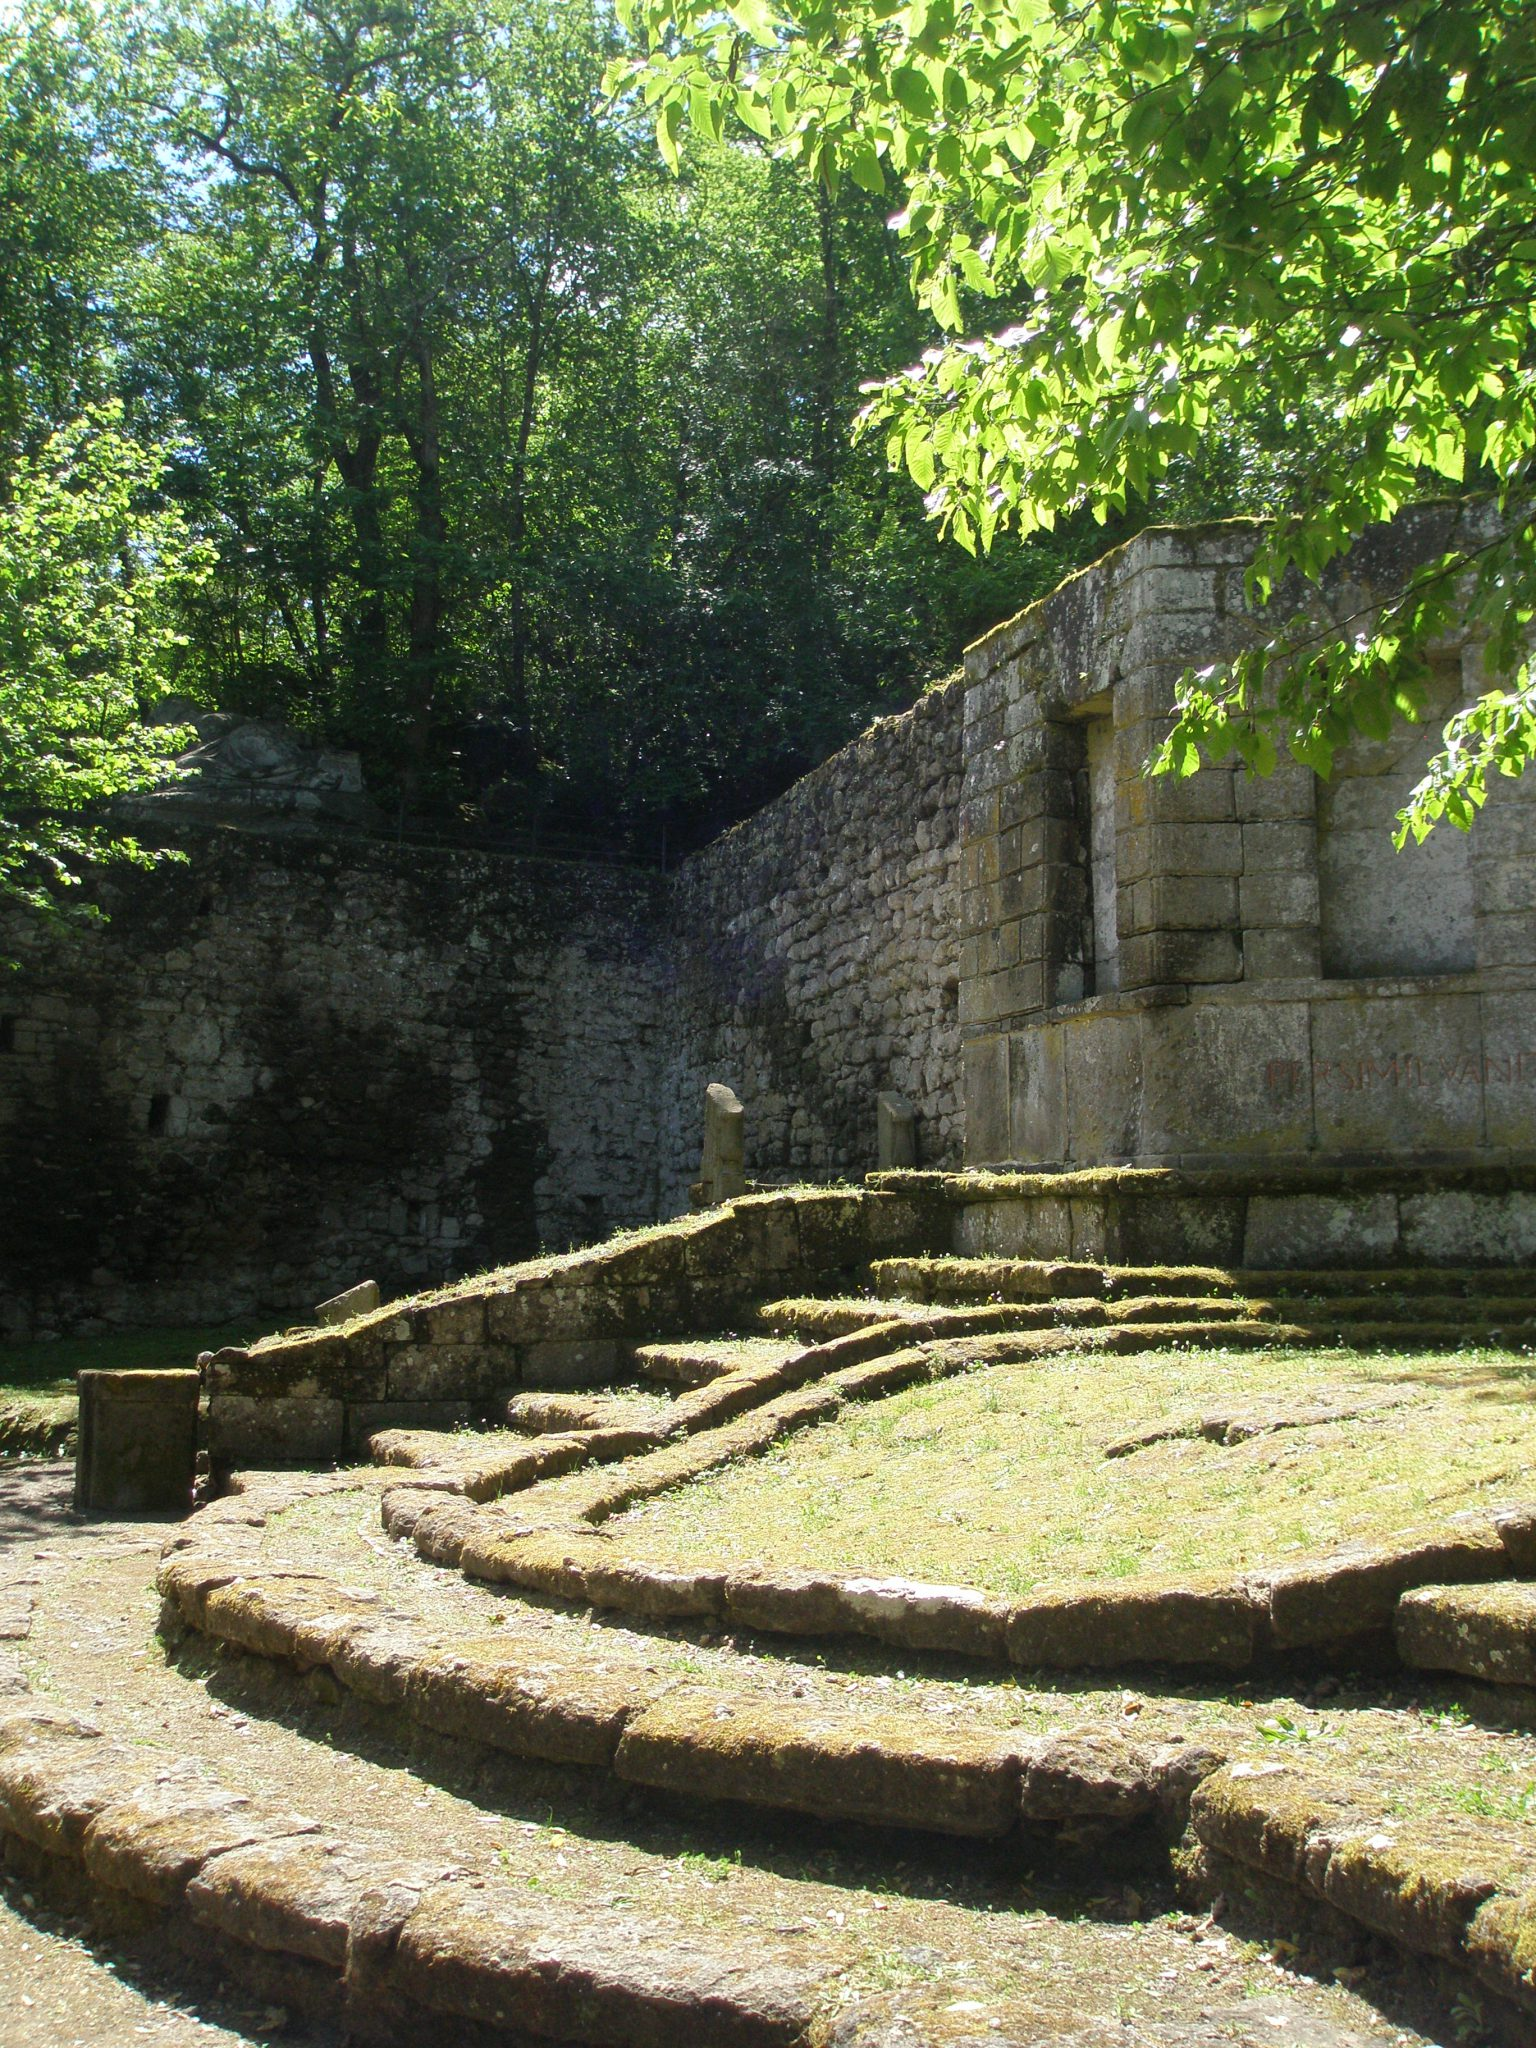 Another view of the Theatre